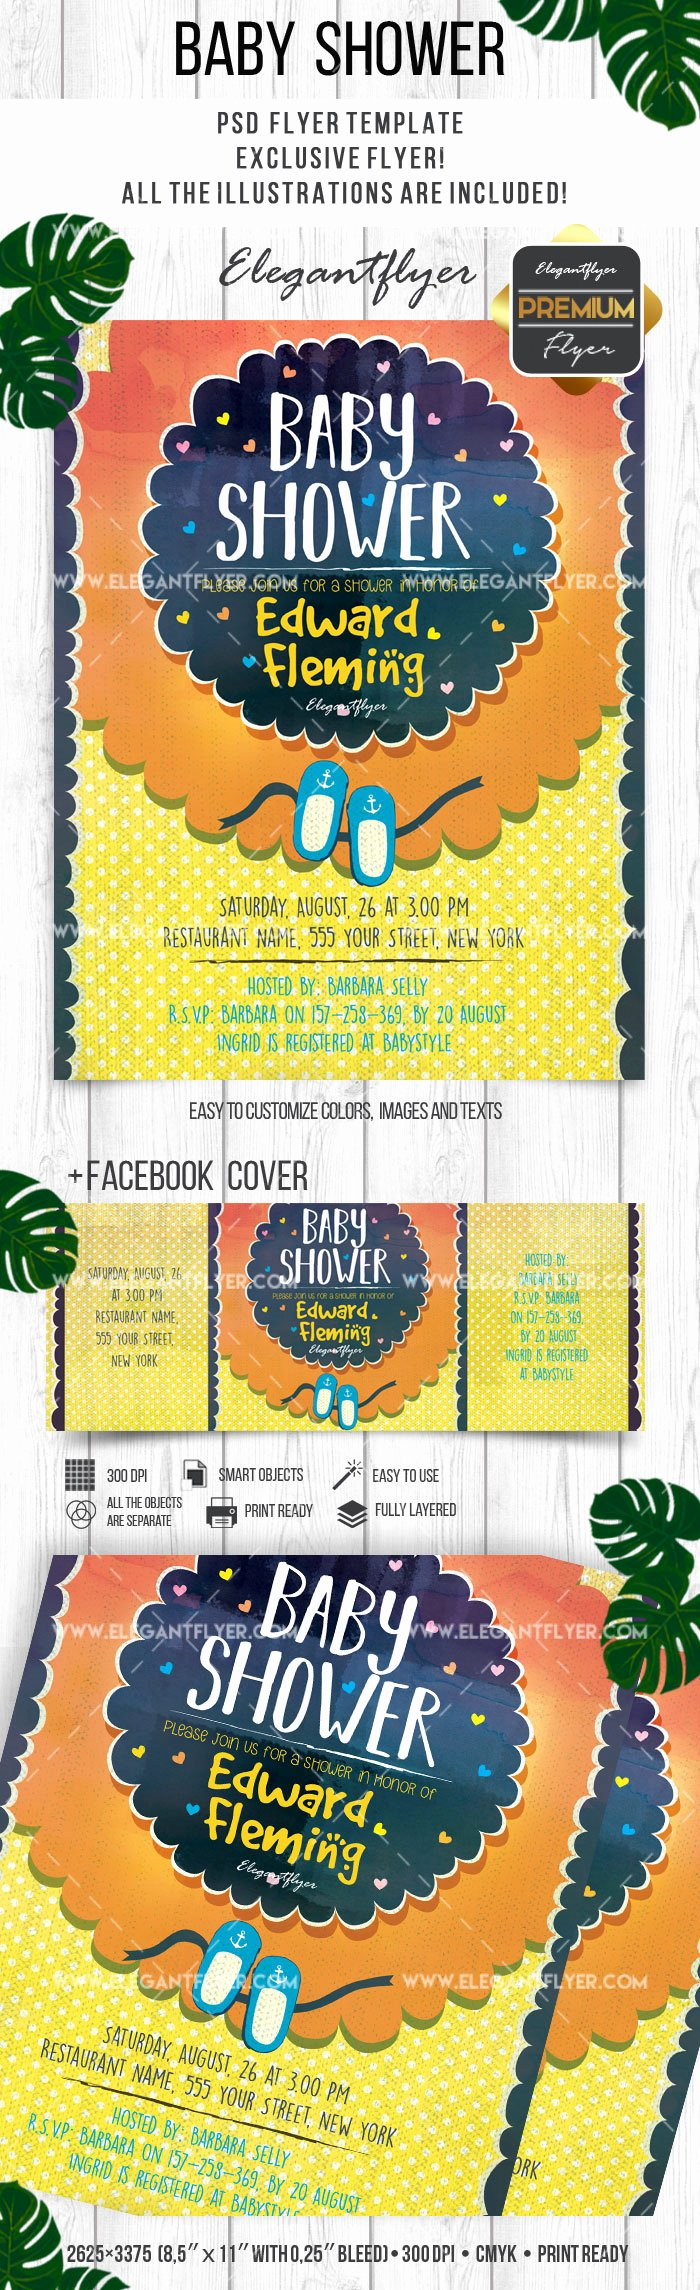 Baby Shower Flyer Ideas Best Of Flyer Baby Shower for Second Child – by Elegantflyer